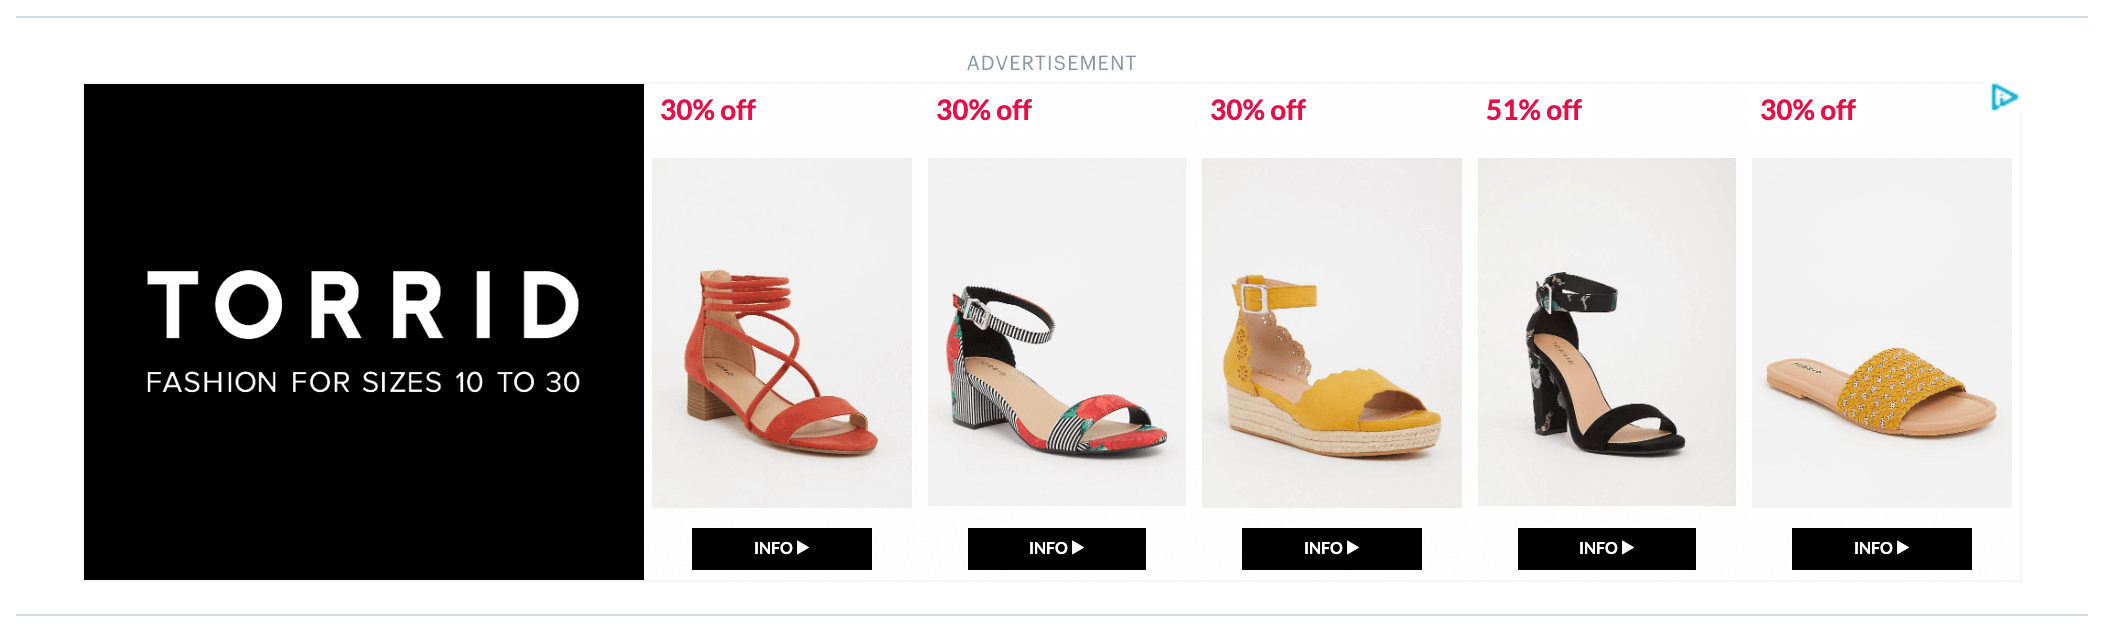 Example of an online ad for Torrid shoes demonstrating an effective multichannel marketing strategy.